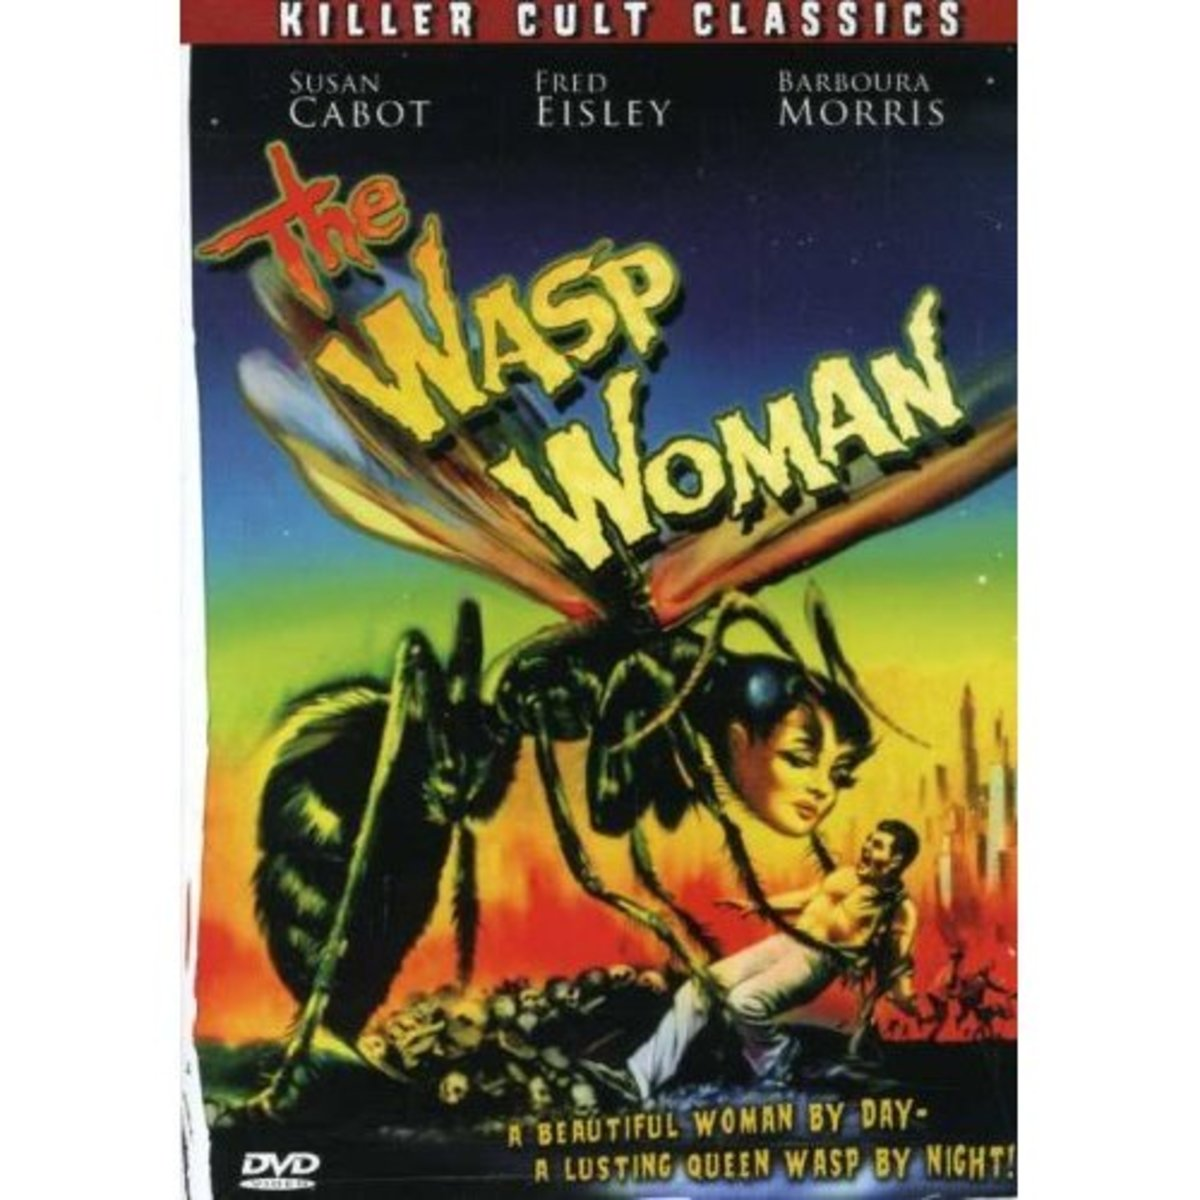 Attack of the Wasp Woman! A beautiful Woman by Day, a Lusting Queen Wasp by Night